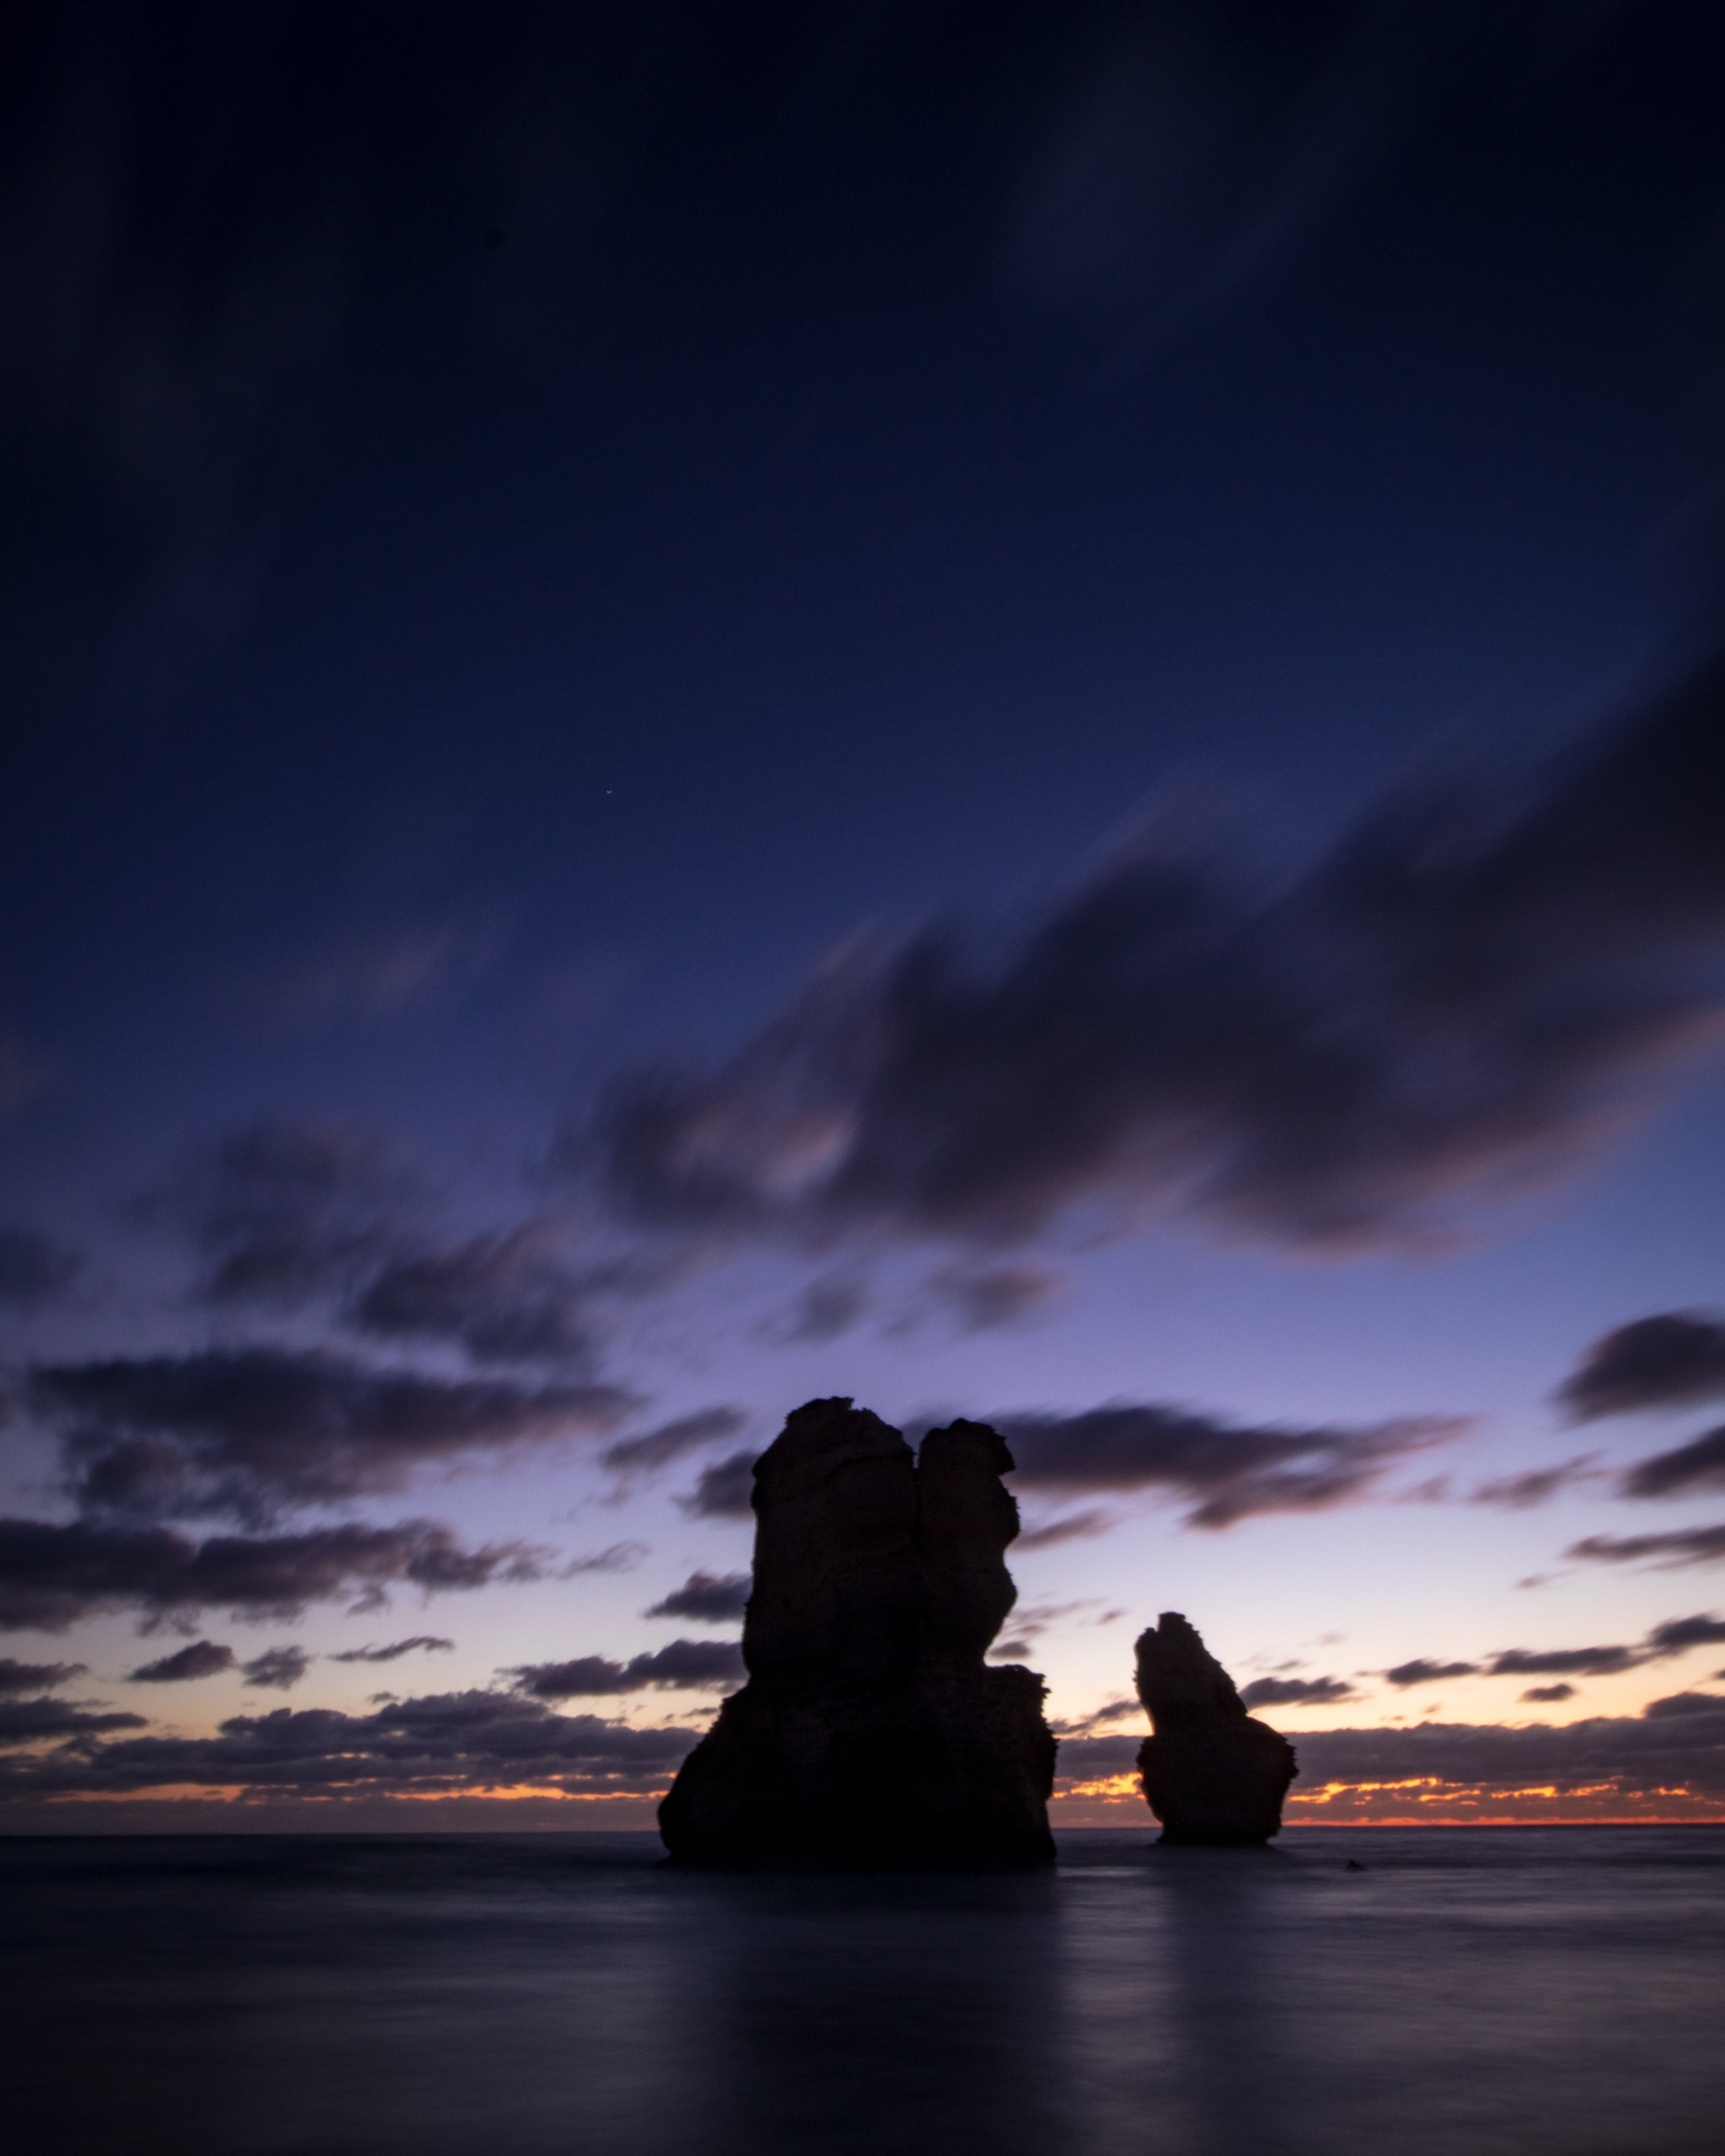 129122 download wallpaper Dark, Ocean, Rocks, Clouds, Dusk, Twilight screensavers and pictures for free